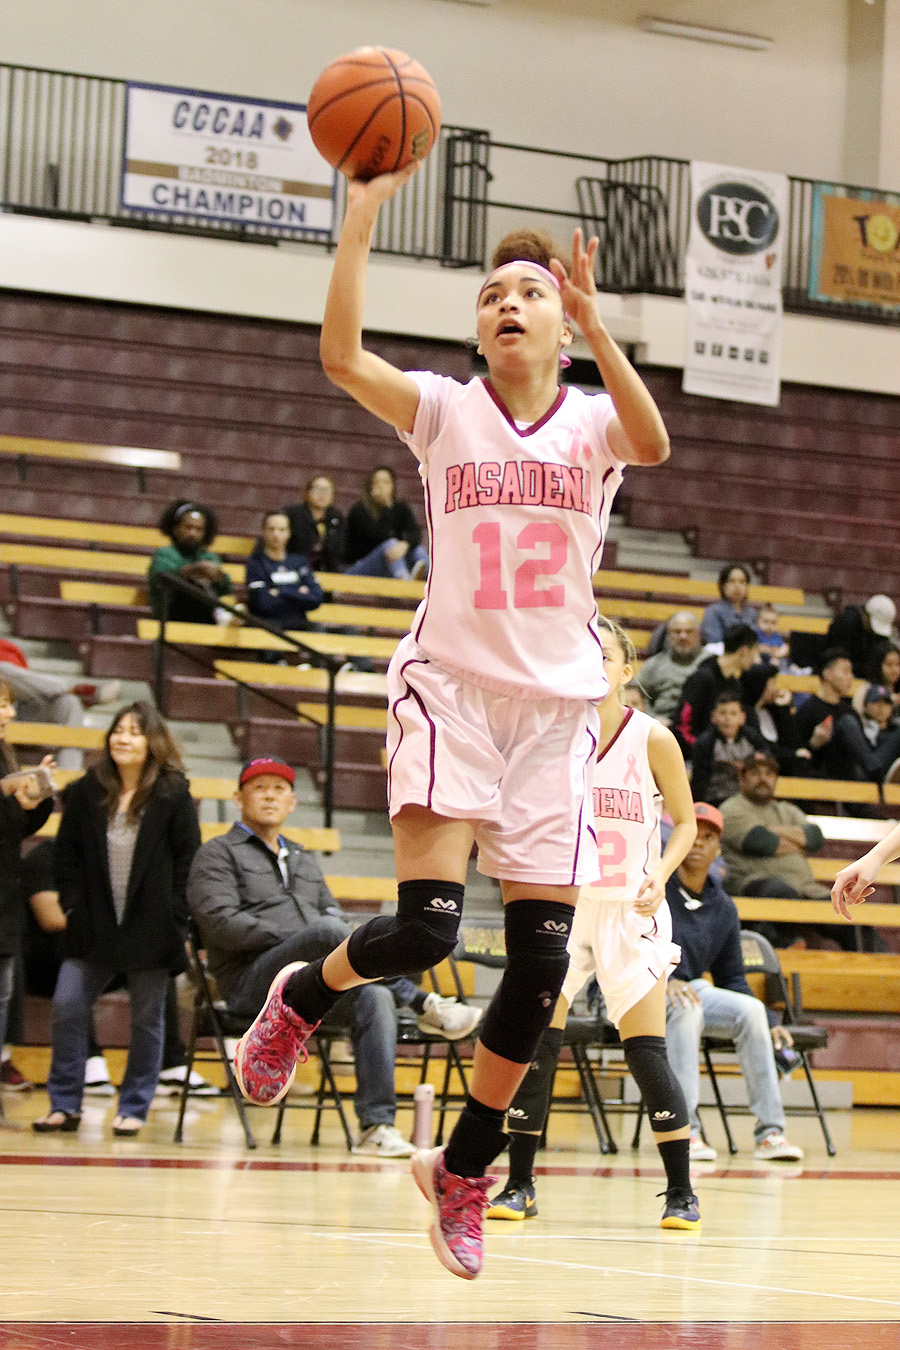 Daniela Mendez goes up for a layup in a recent Lancers game.